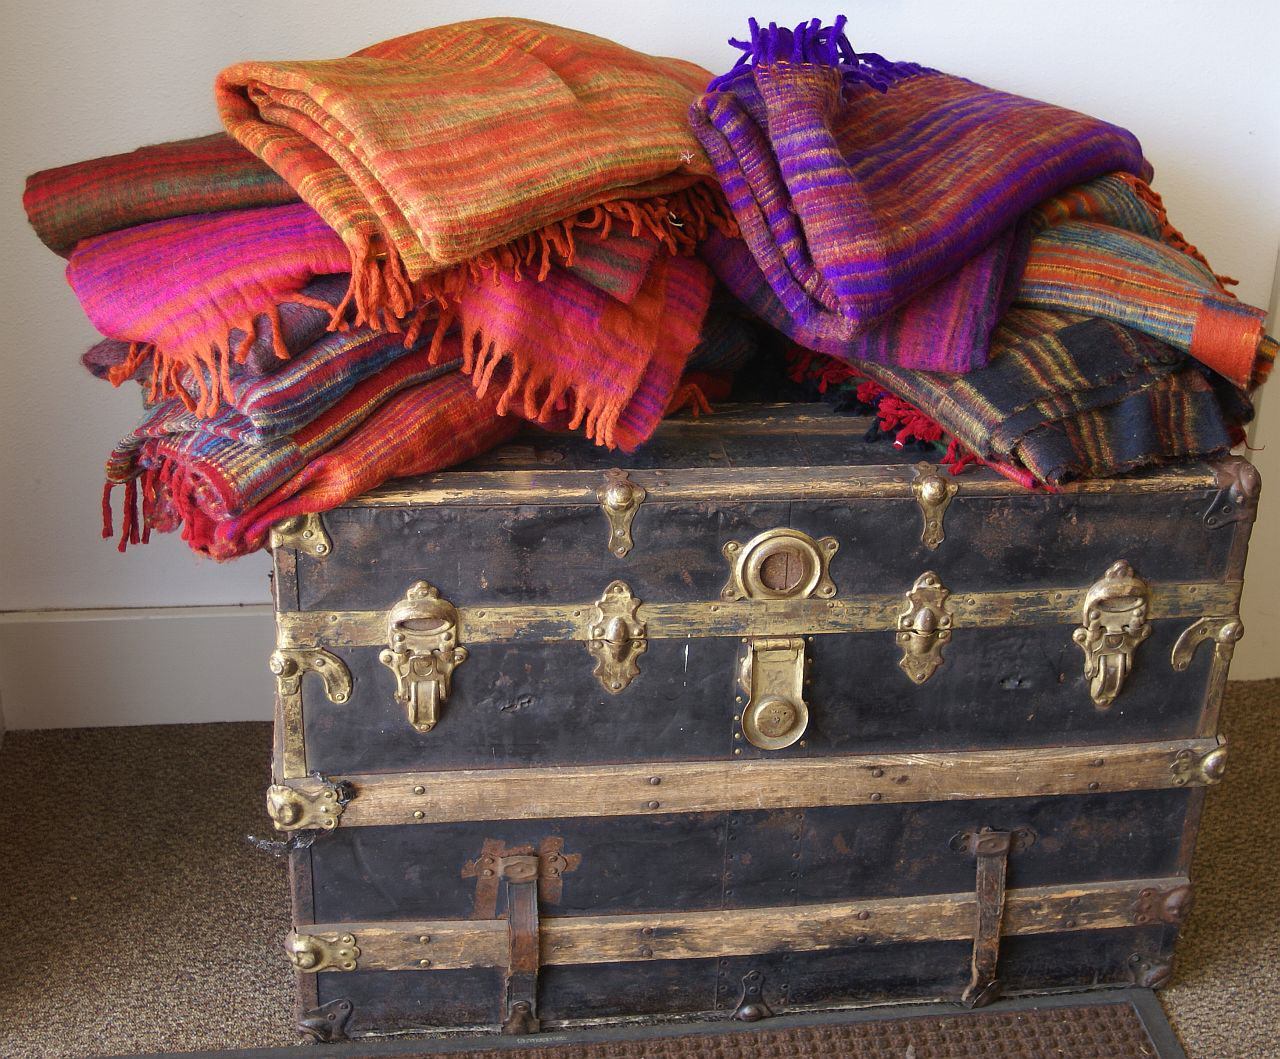 Blankets And Throws - The Blanket Store